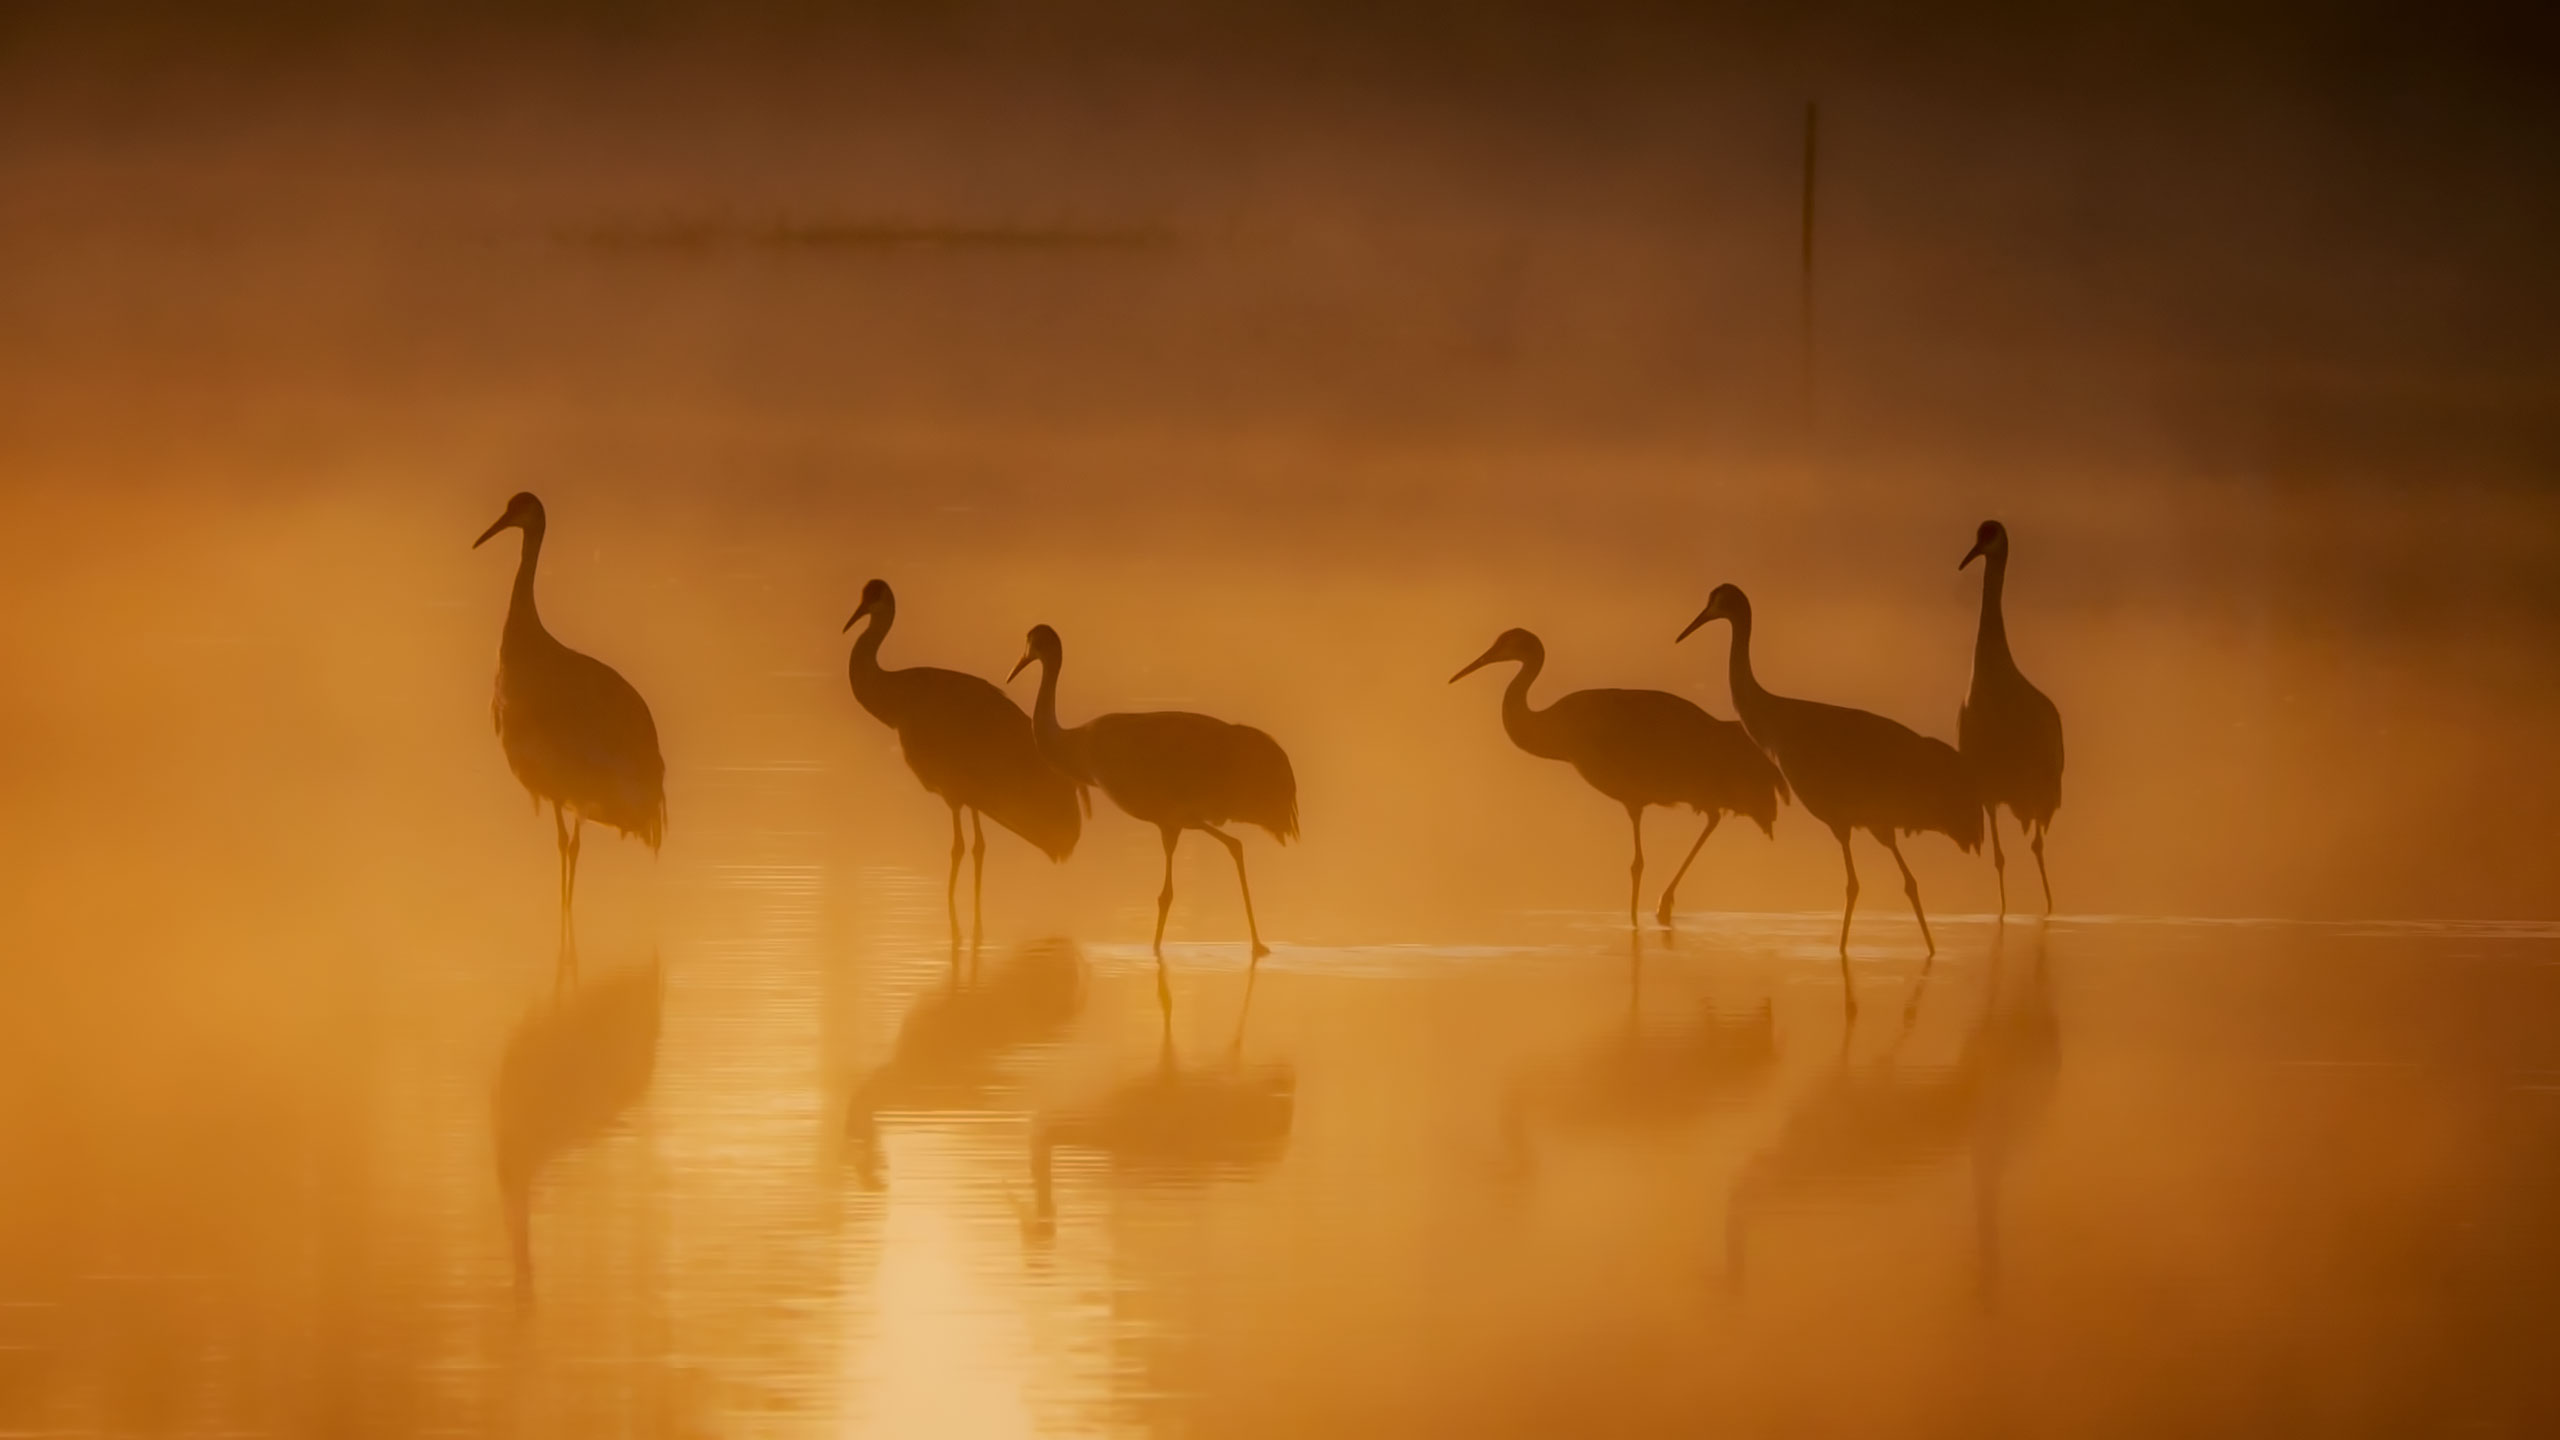 bird photography in the early moning fog